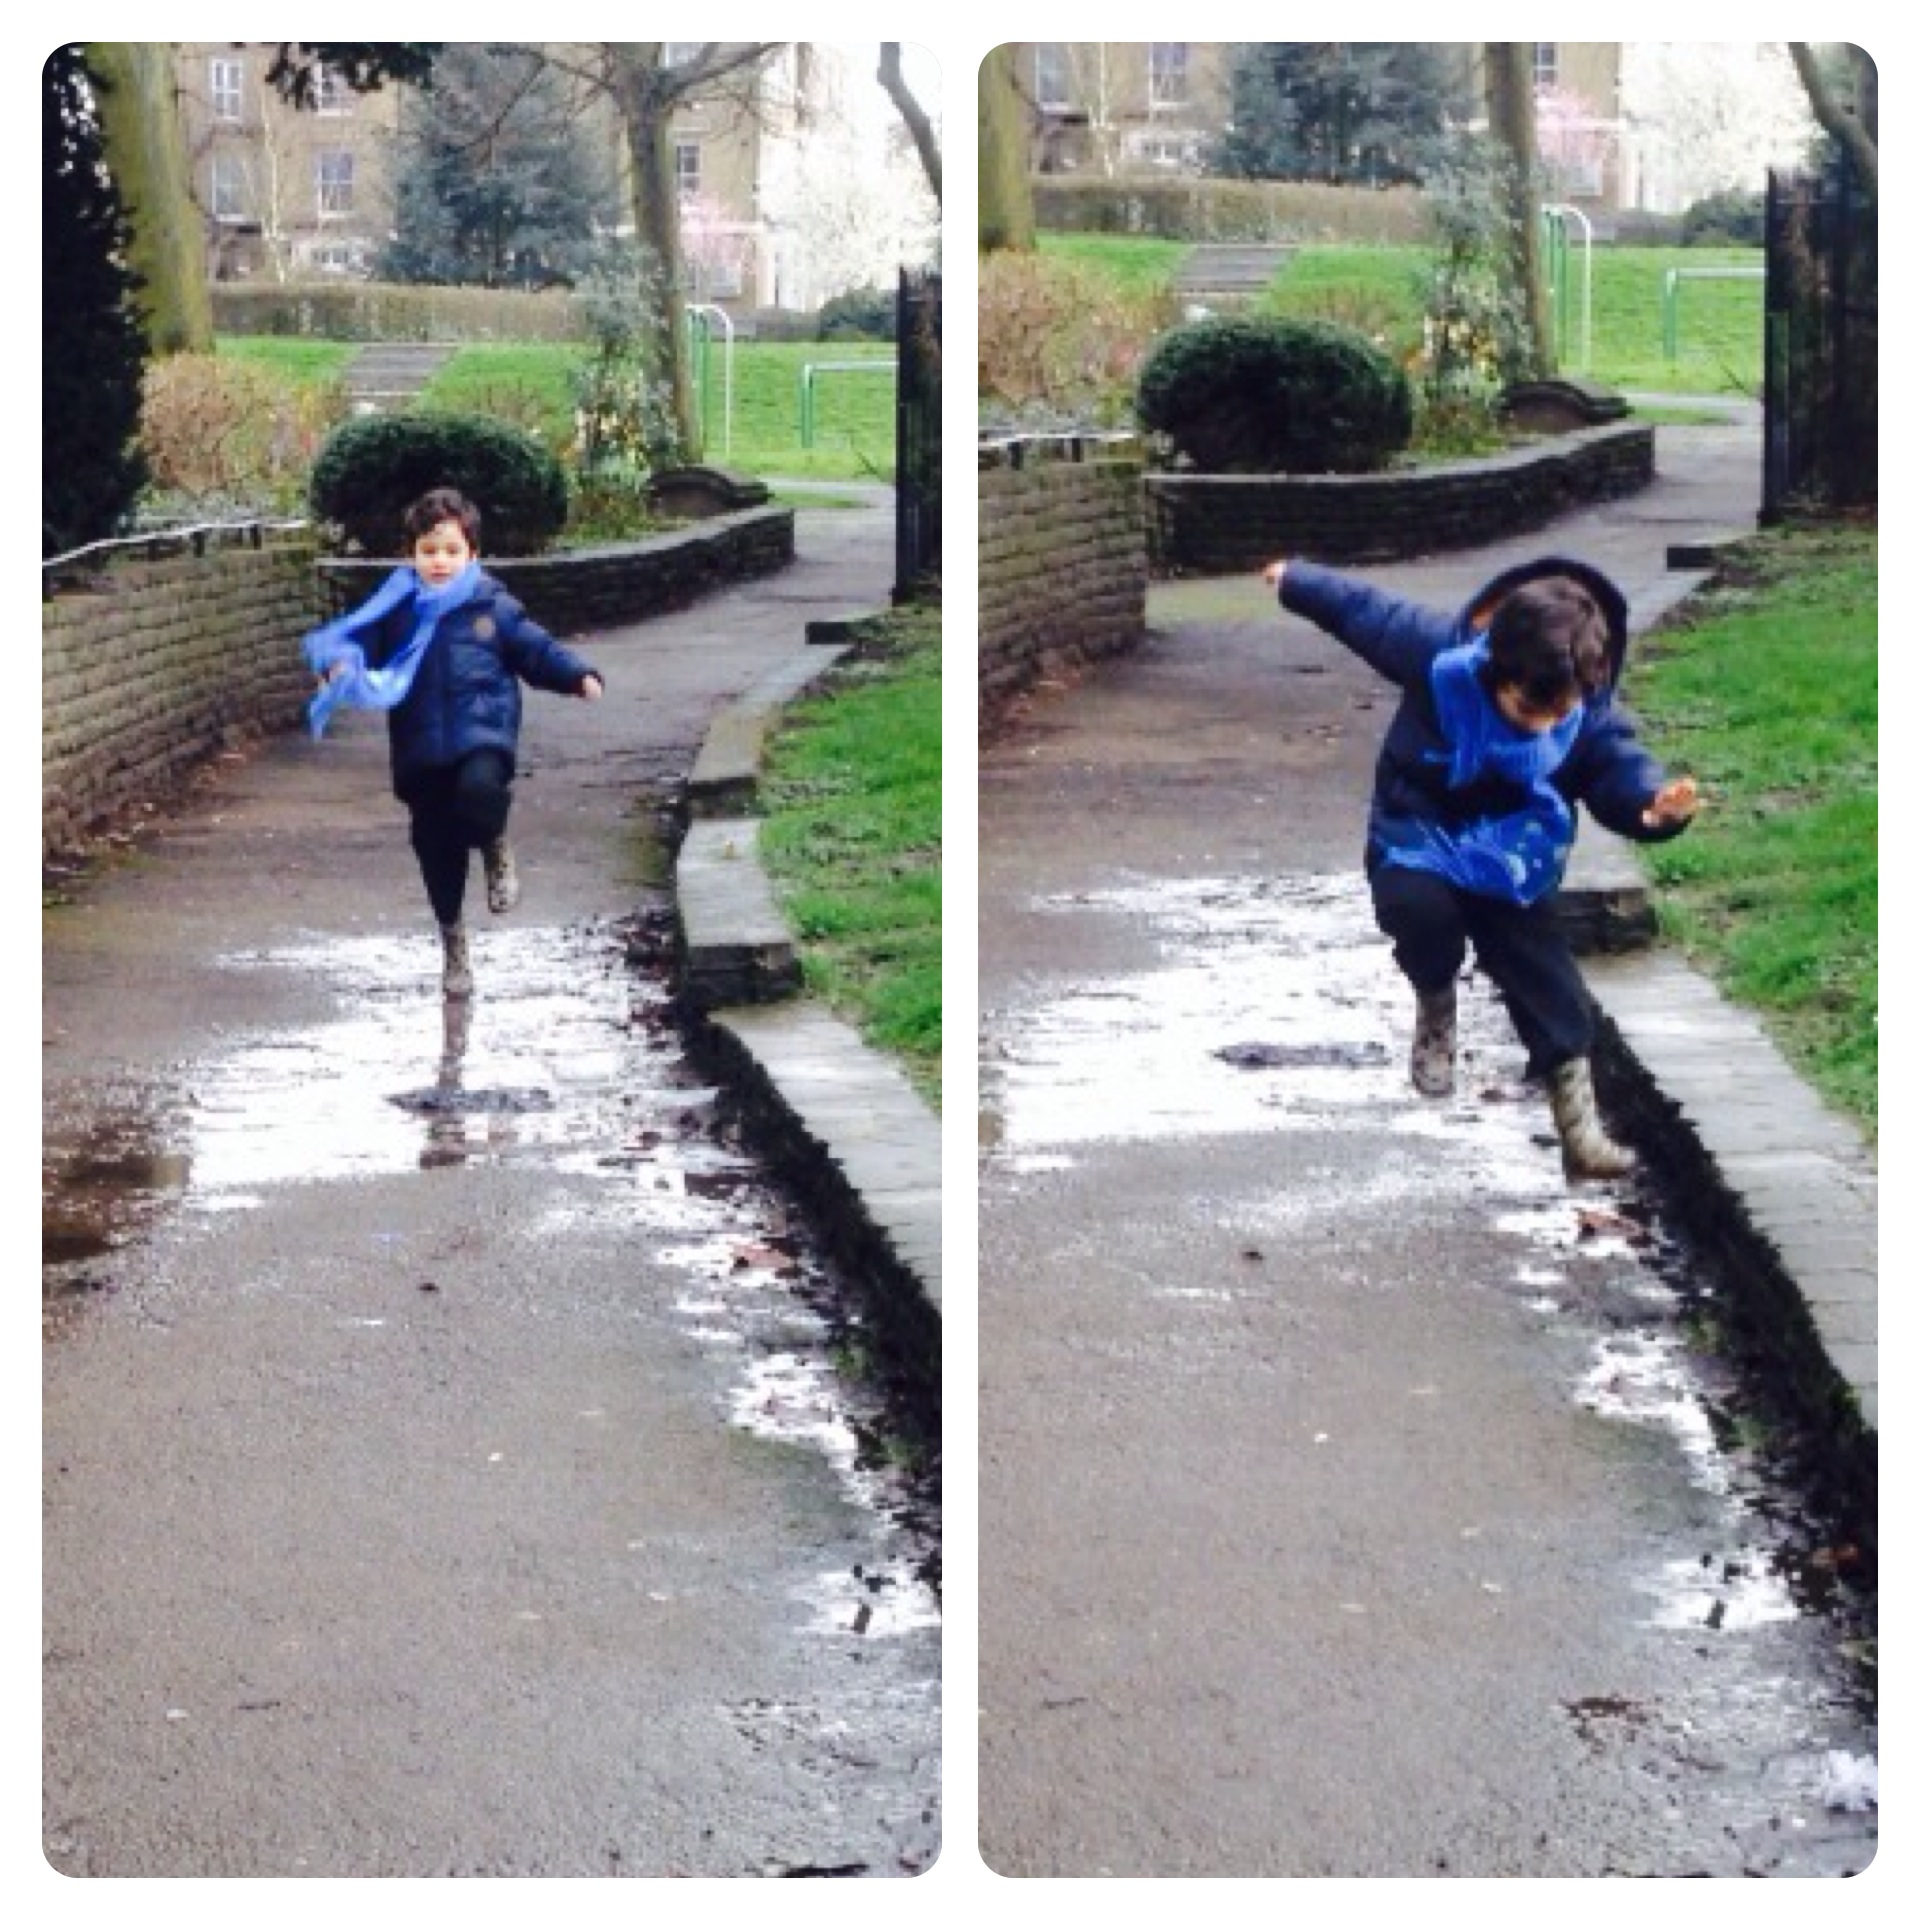 Running and Jumping in Puddles